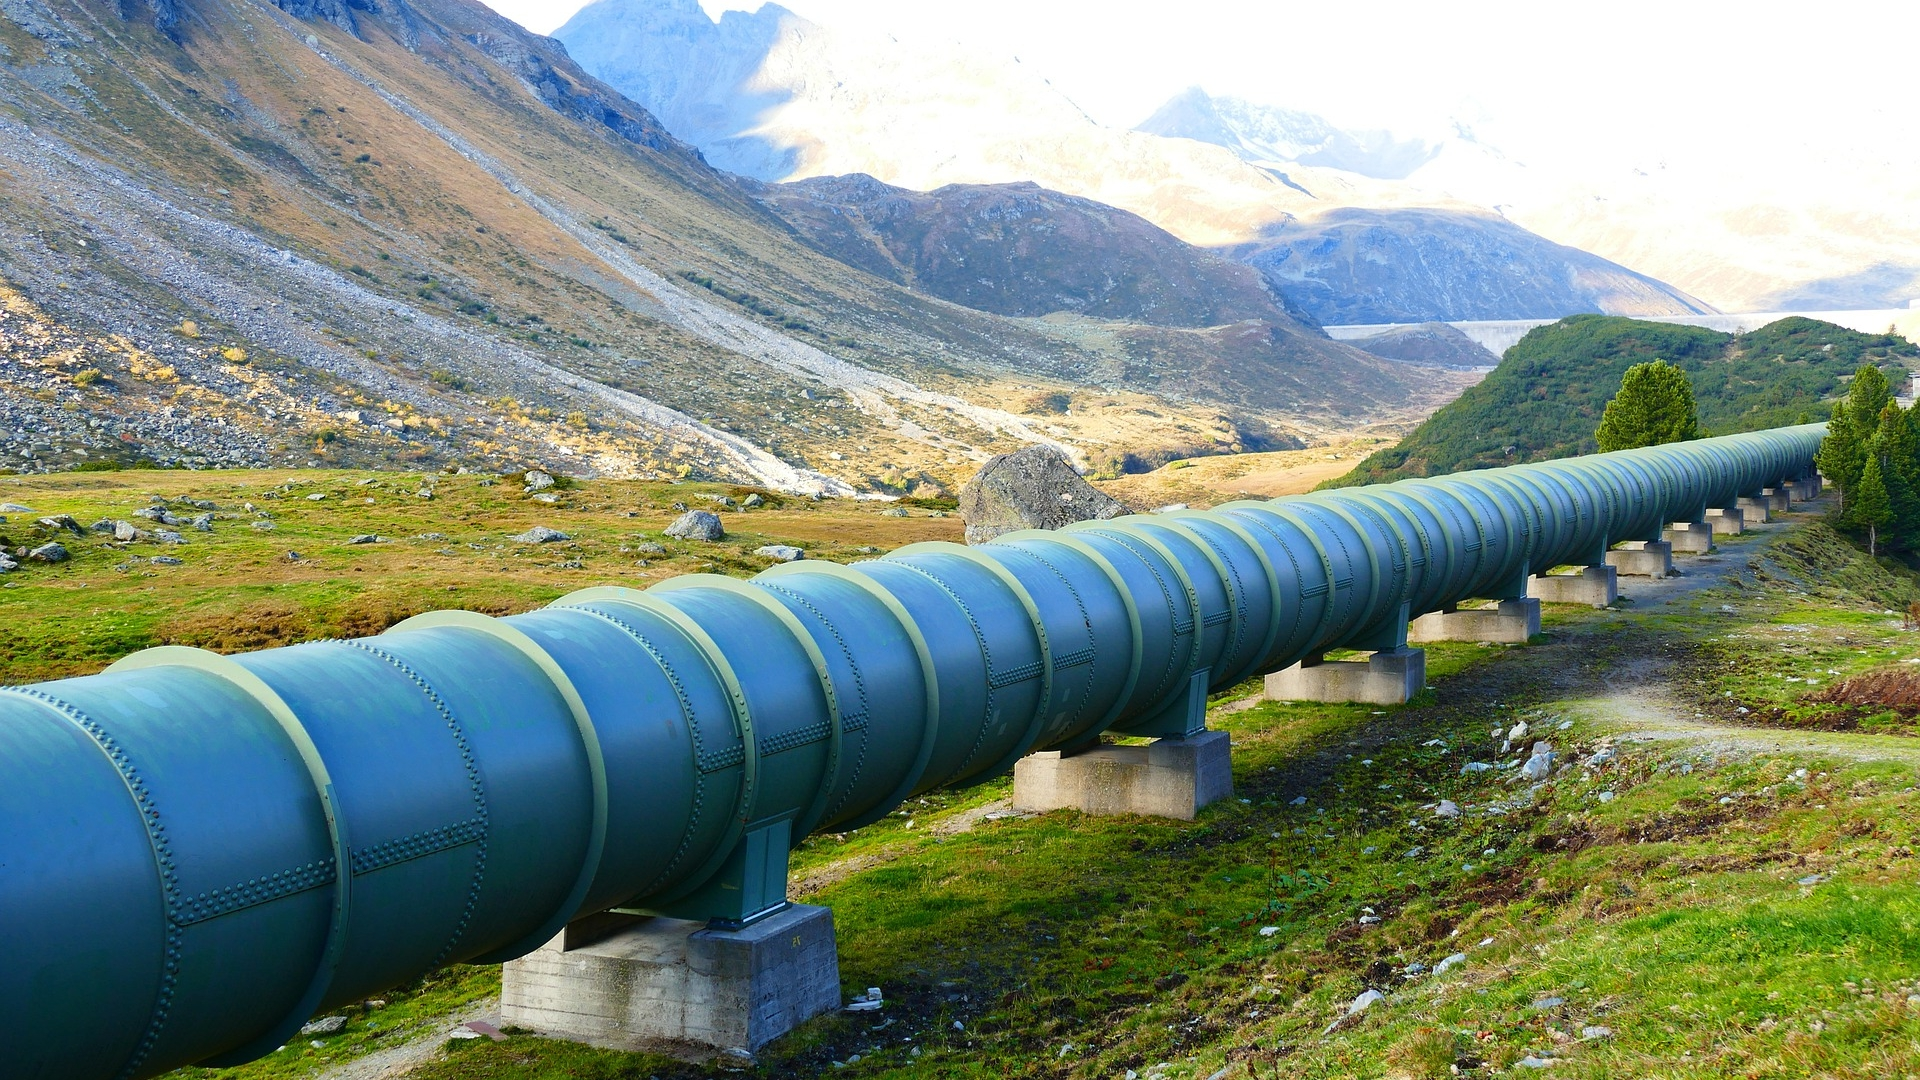 Natural Gas Transmission &Distribution Companies - Decarbonizing the Natural Gas (NG) pipeline network by injecting low-cost green H2, at costs similar to pipeline NG, to reduce downstream GHG emissions.